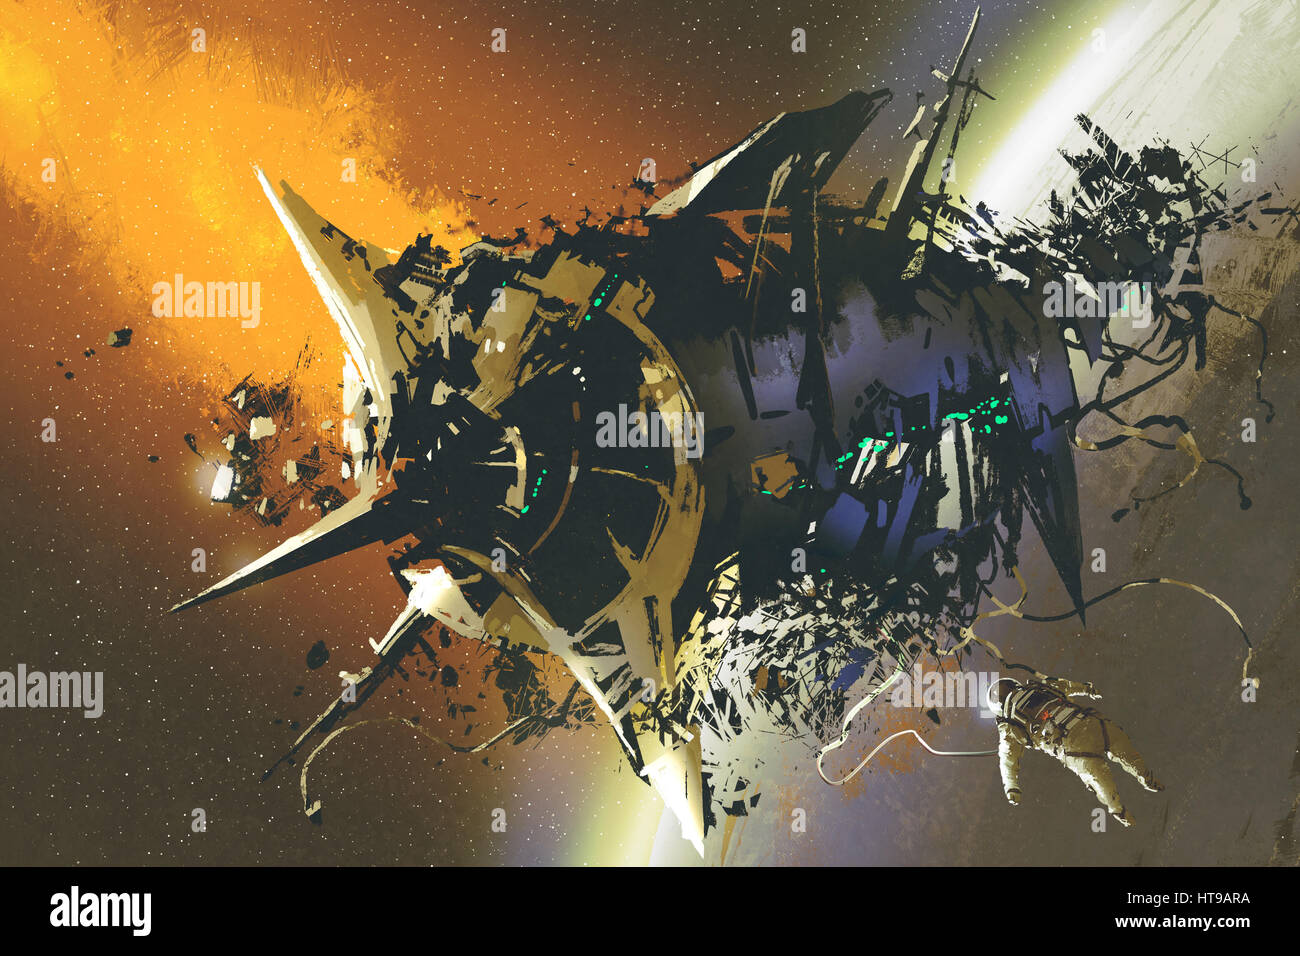 the damaged spaceship and dead astronaut floating in outer space,illustration painting - Stock Image